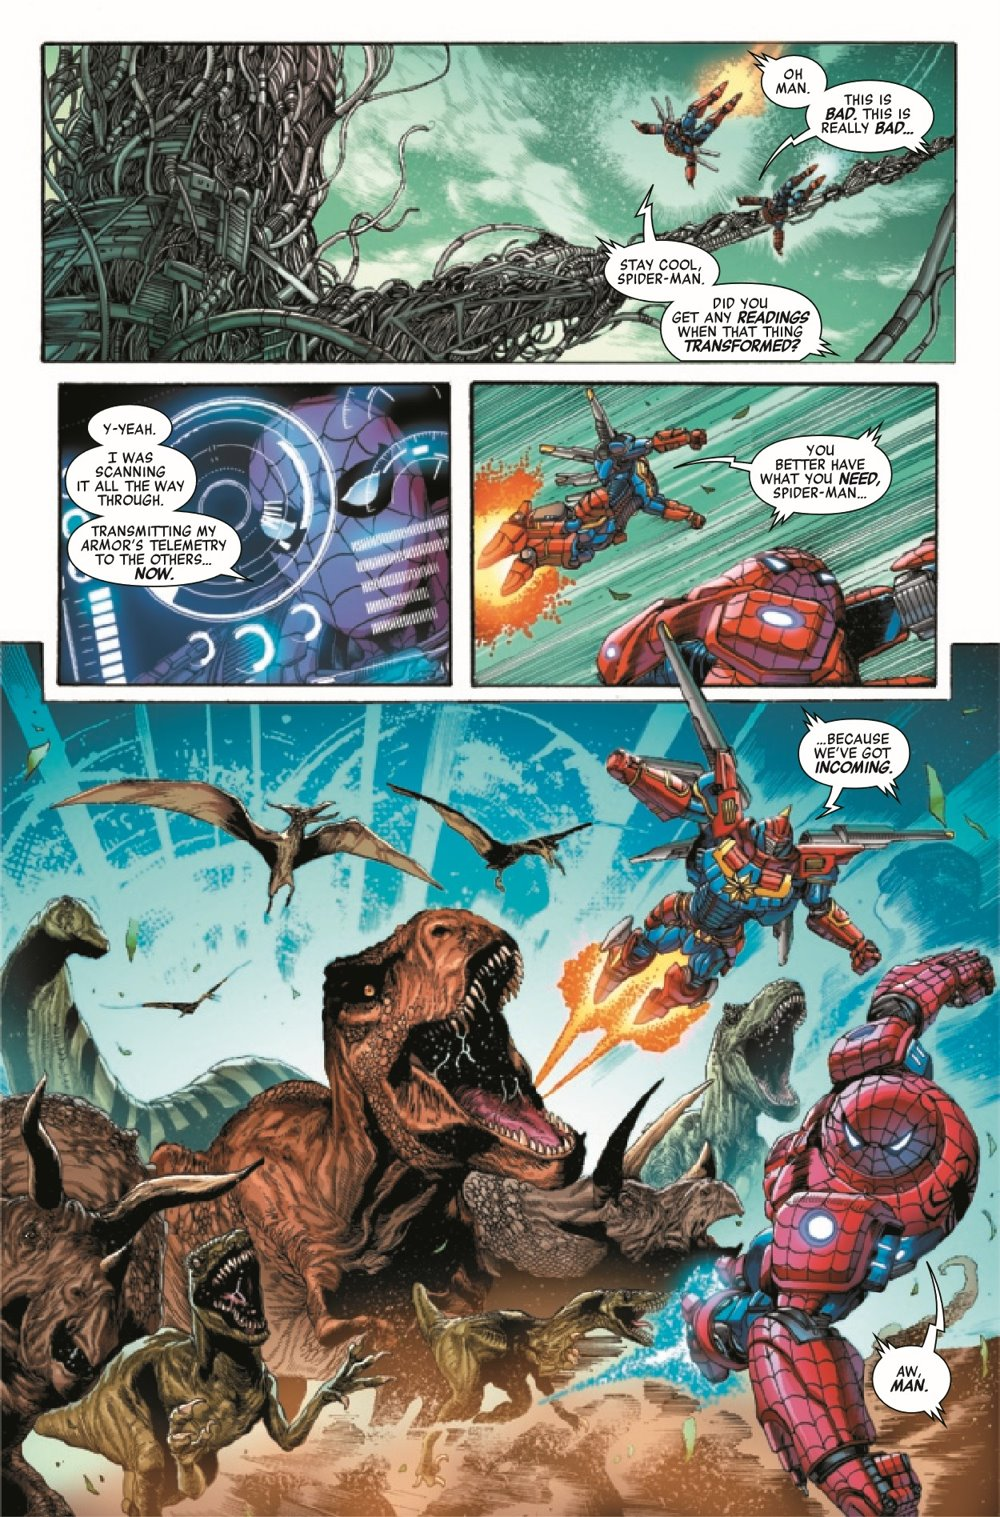 AVENMECHST2021003_Preview-6 ComicList Previews: AVENGERS MECH STRIKE #3 (OF 5)